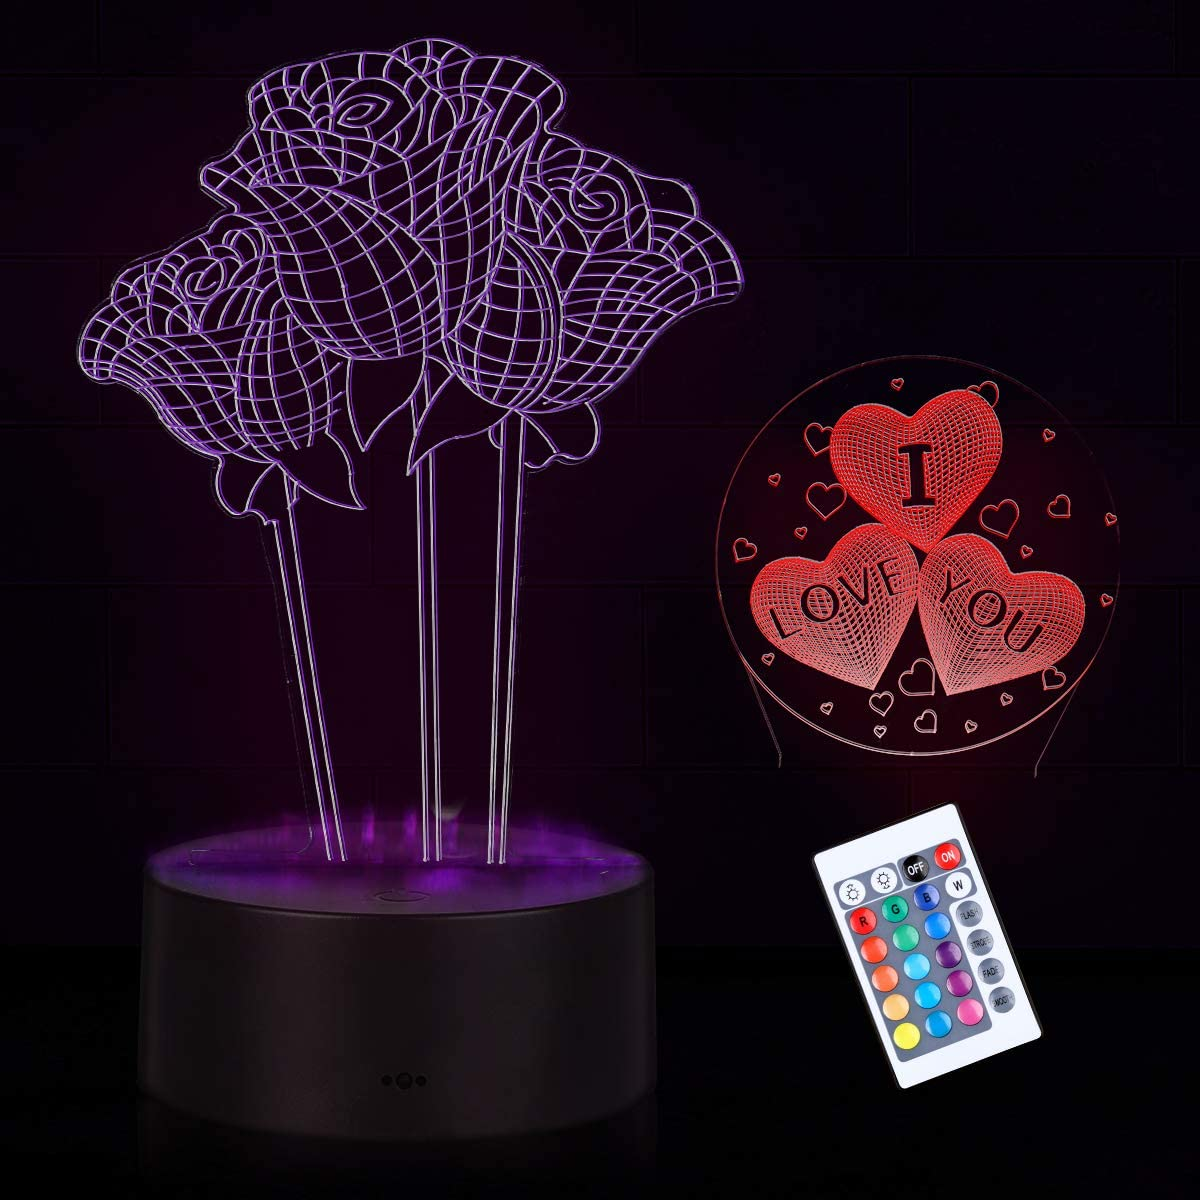 3D Night Light I Love You Sign Heart Night Light Rose 3D Optical Illusion Night Light Table Desk LED Lamp 16 Colors Changing Home Decor Valentines Day Birthday Romantic Gifts for Women Lover Girls